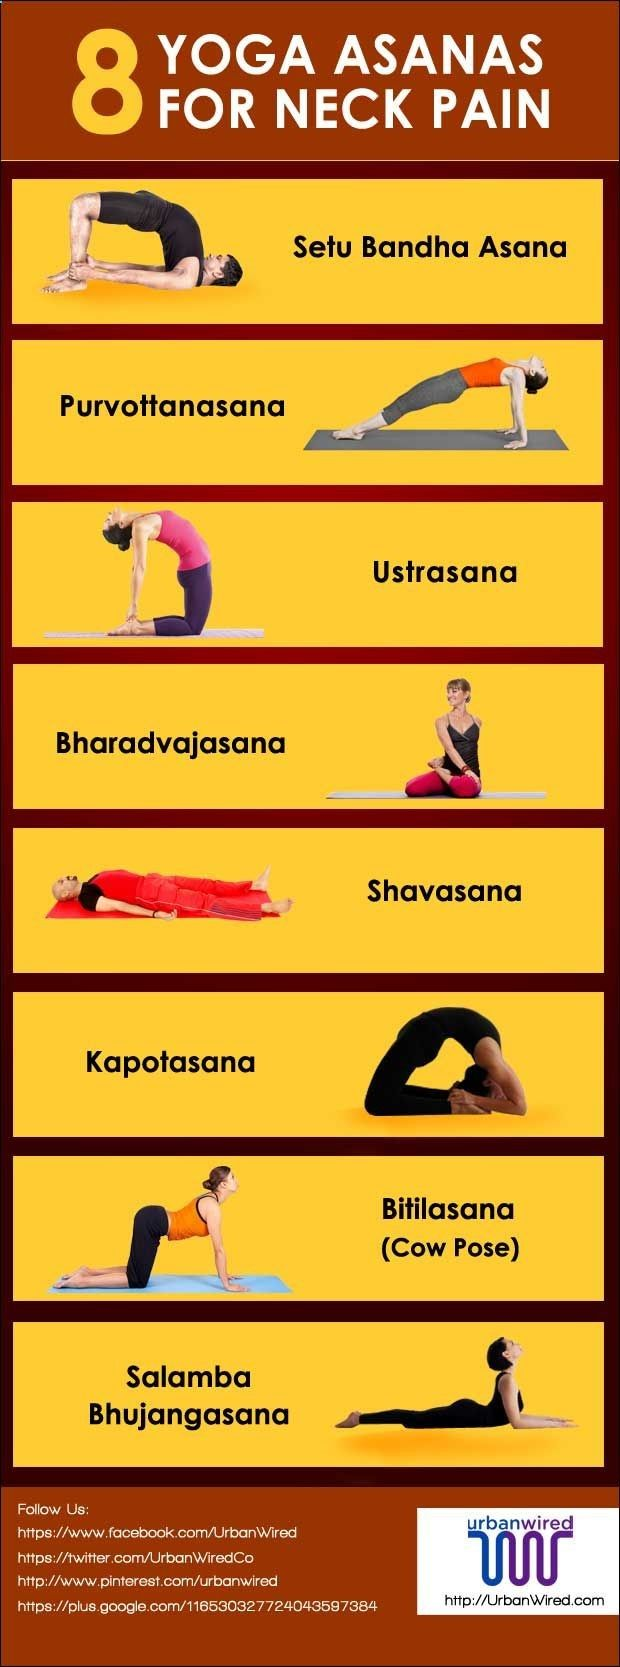 8 Most Effective Exercises and Poses Of Yoga For Neck Pain 1. Setu BandhaAsana 2. Purvottanasana 3. Ustrasana 4. Bharadvajasana 5. Shavasana 6. Kapotasana 7. Bitilasana 8. Salamba Bhujangasana